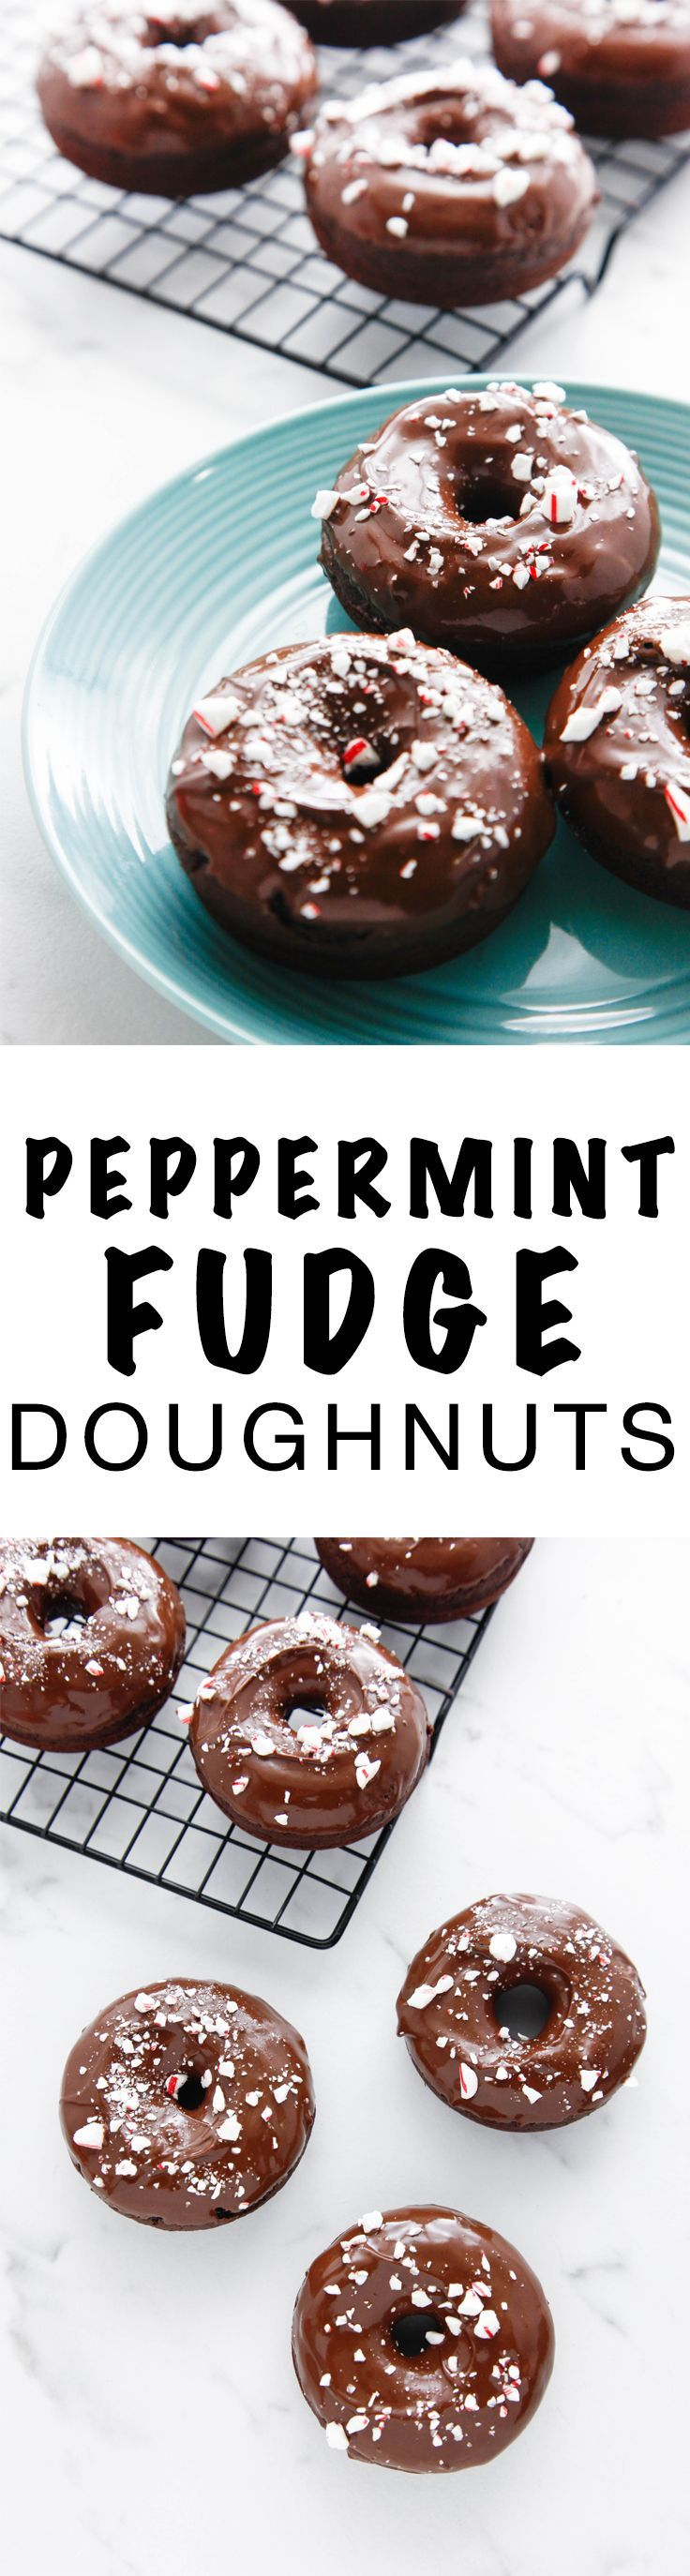 Peppermint Fudge Doughnuts perfect for Christmas and all winter celebrations! Perfect for Christmas or dessert! via /thebrooklyncook/